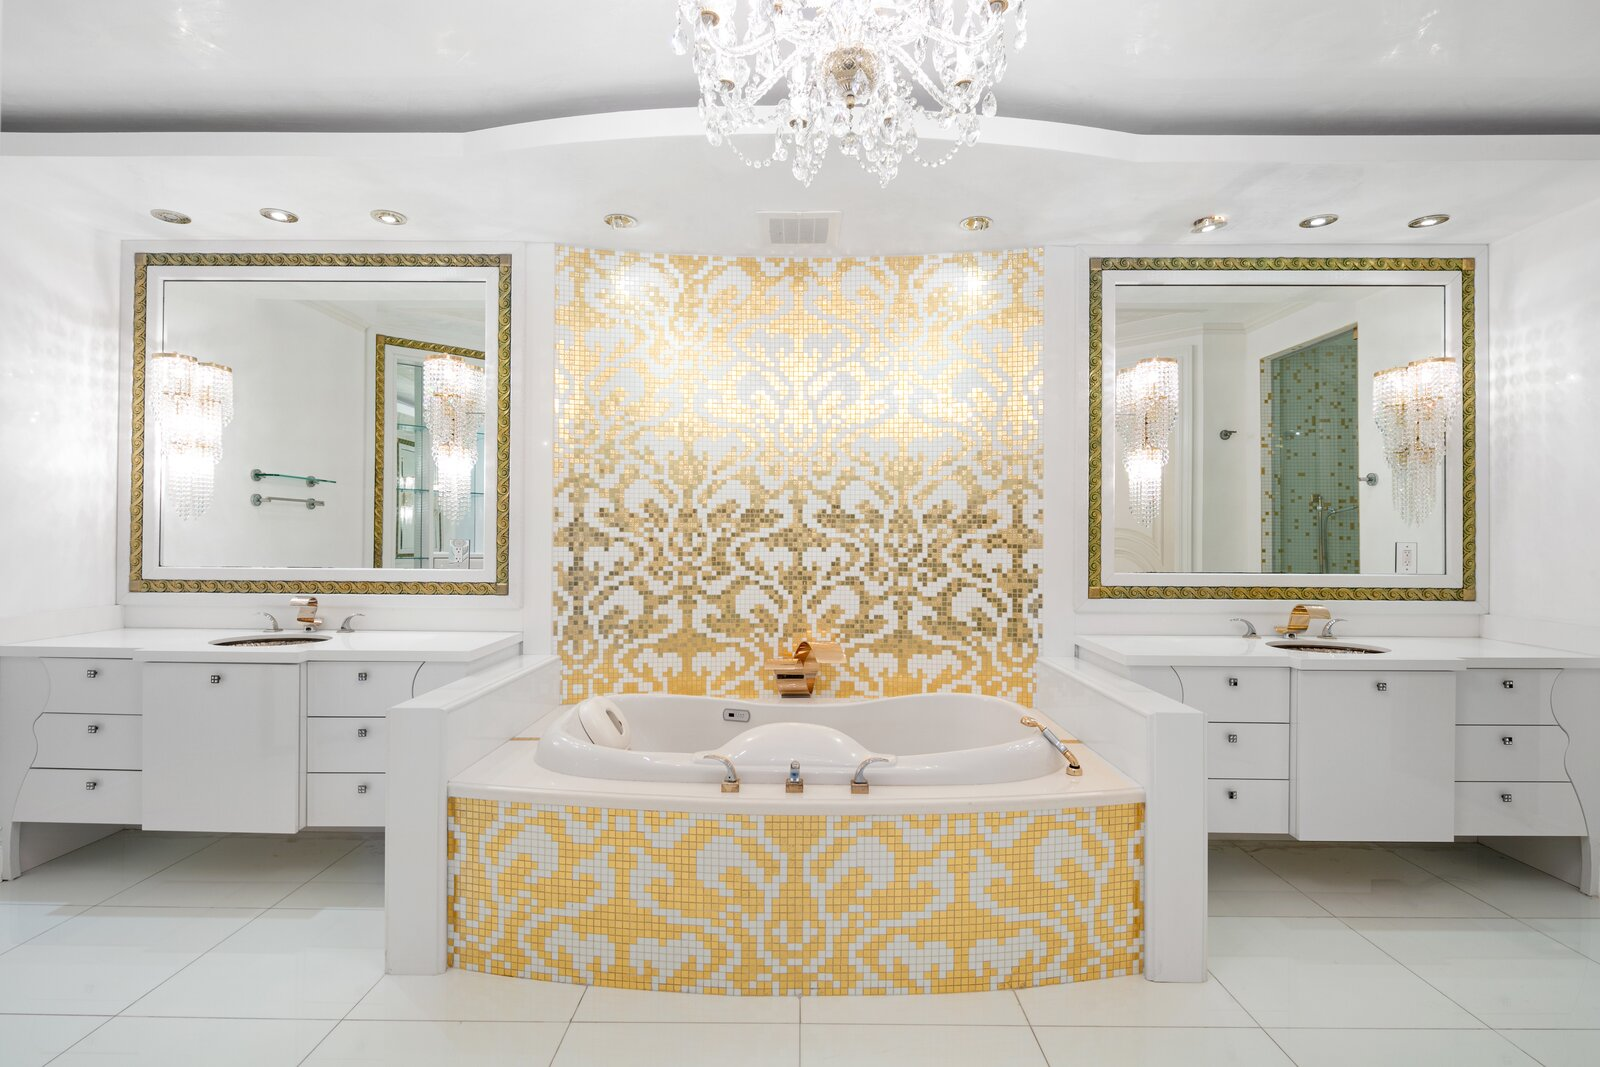 Gilded Palace in the Sky Features Gold Bathroom, Fendi Accents and Panoramic Ocean Views